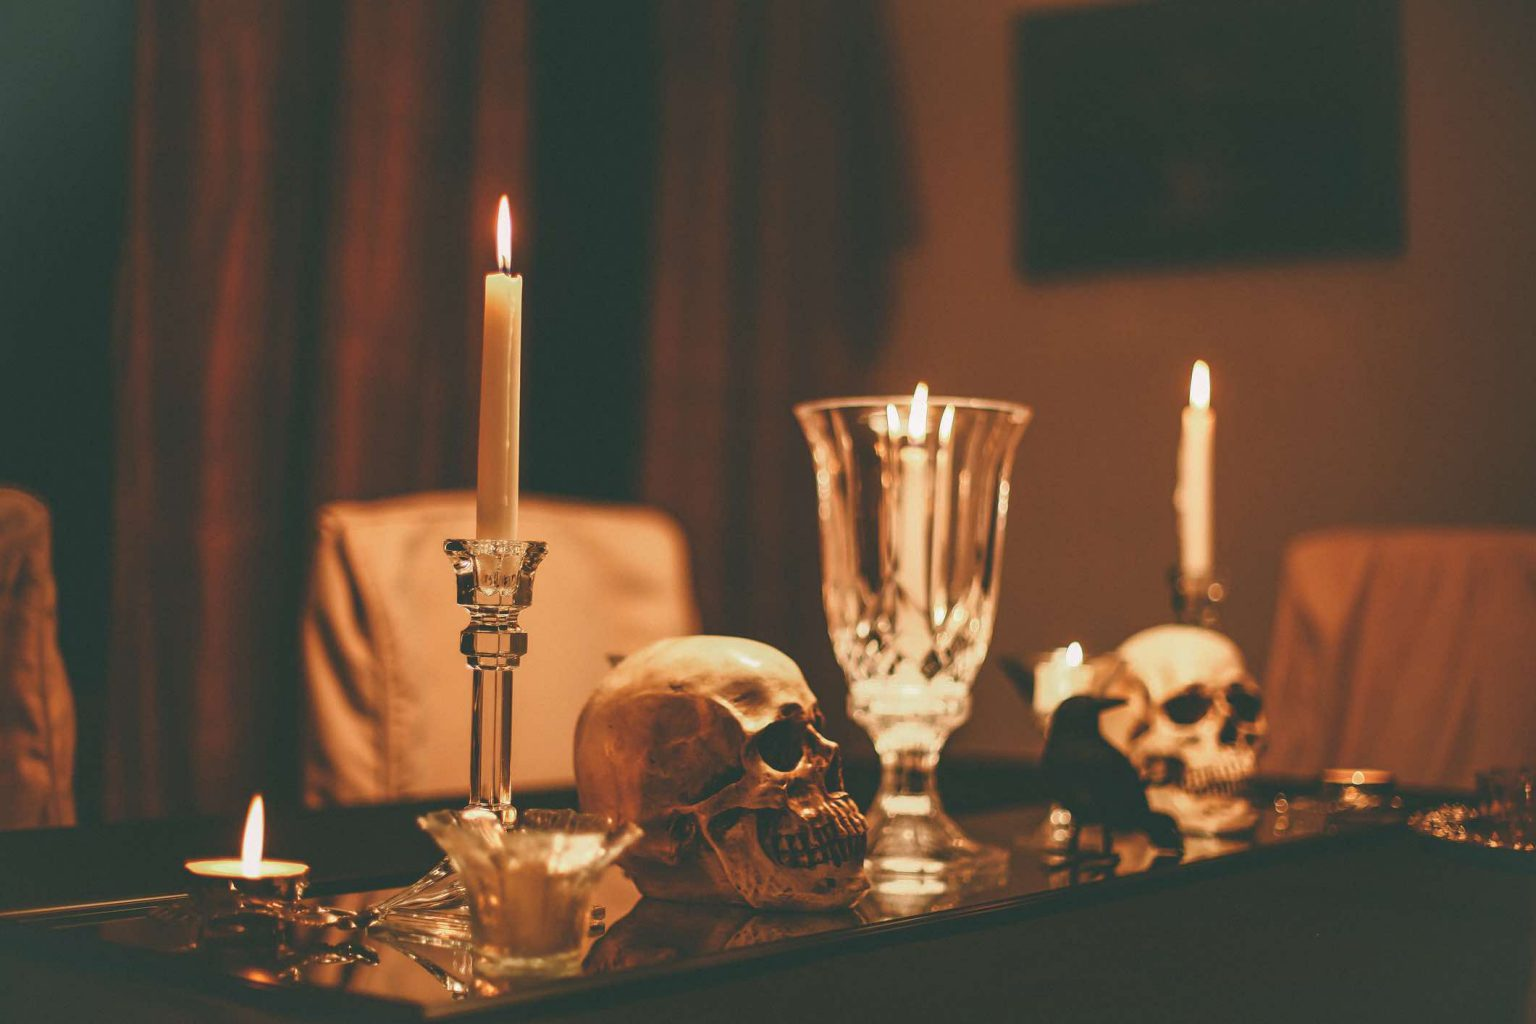 Candlesticks, skulls and a raven on a table - Google kills authorship as an SEO tool